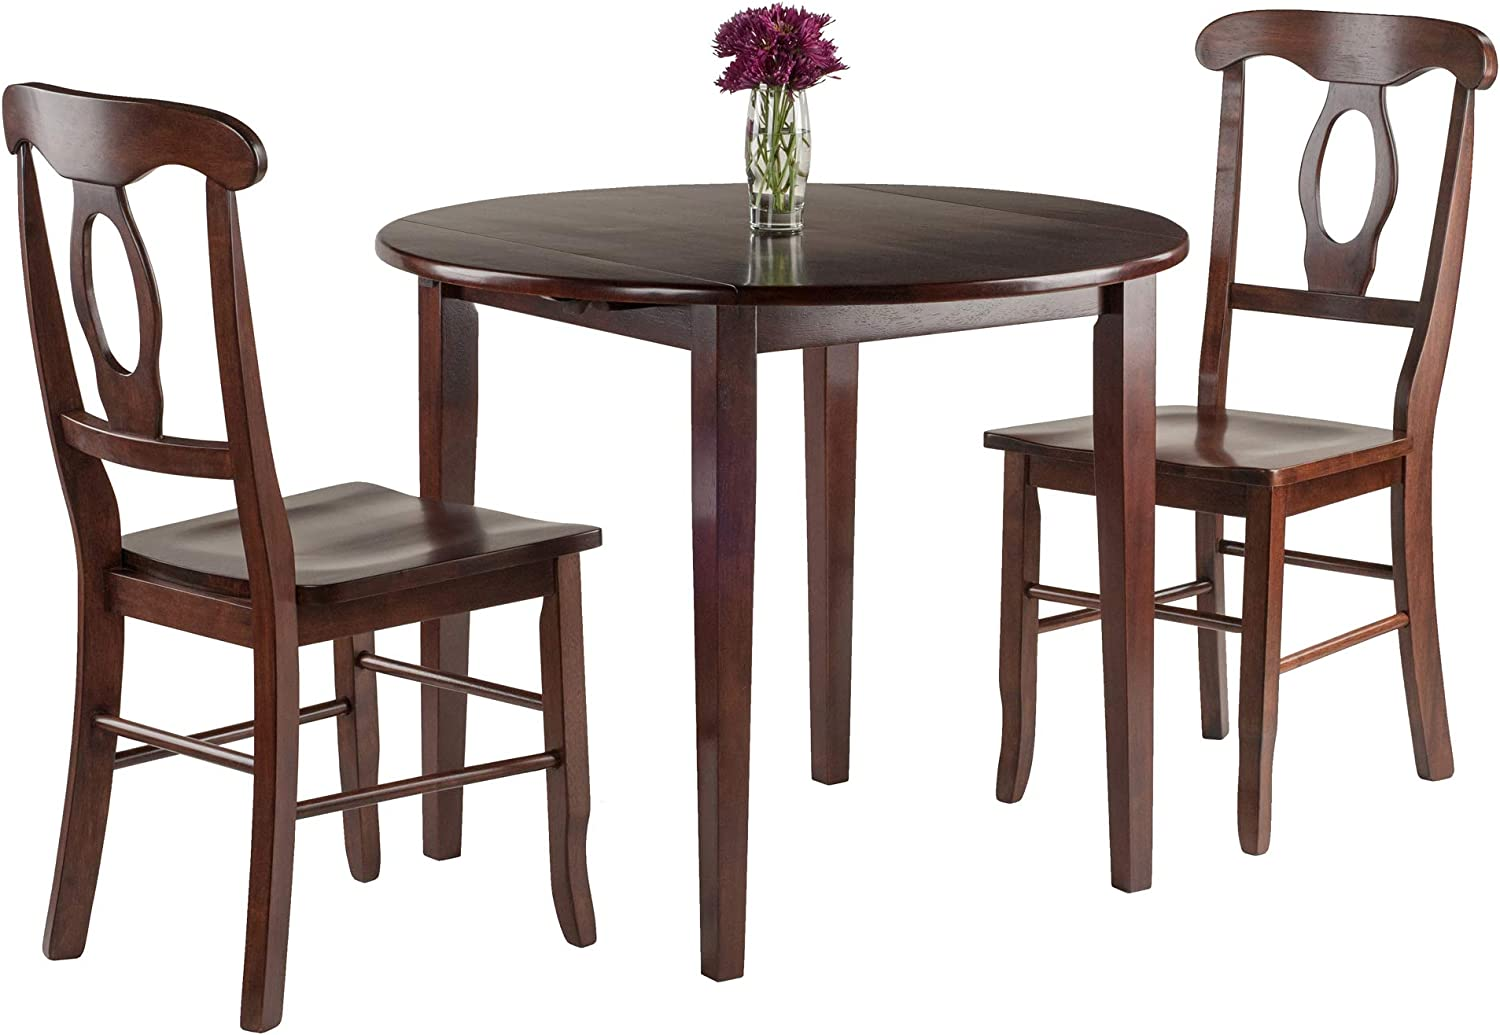 Winsome Clayton 3-PC Set Drop Leaf Table with 2 Keyhole Back Chairs Dining Walnut